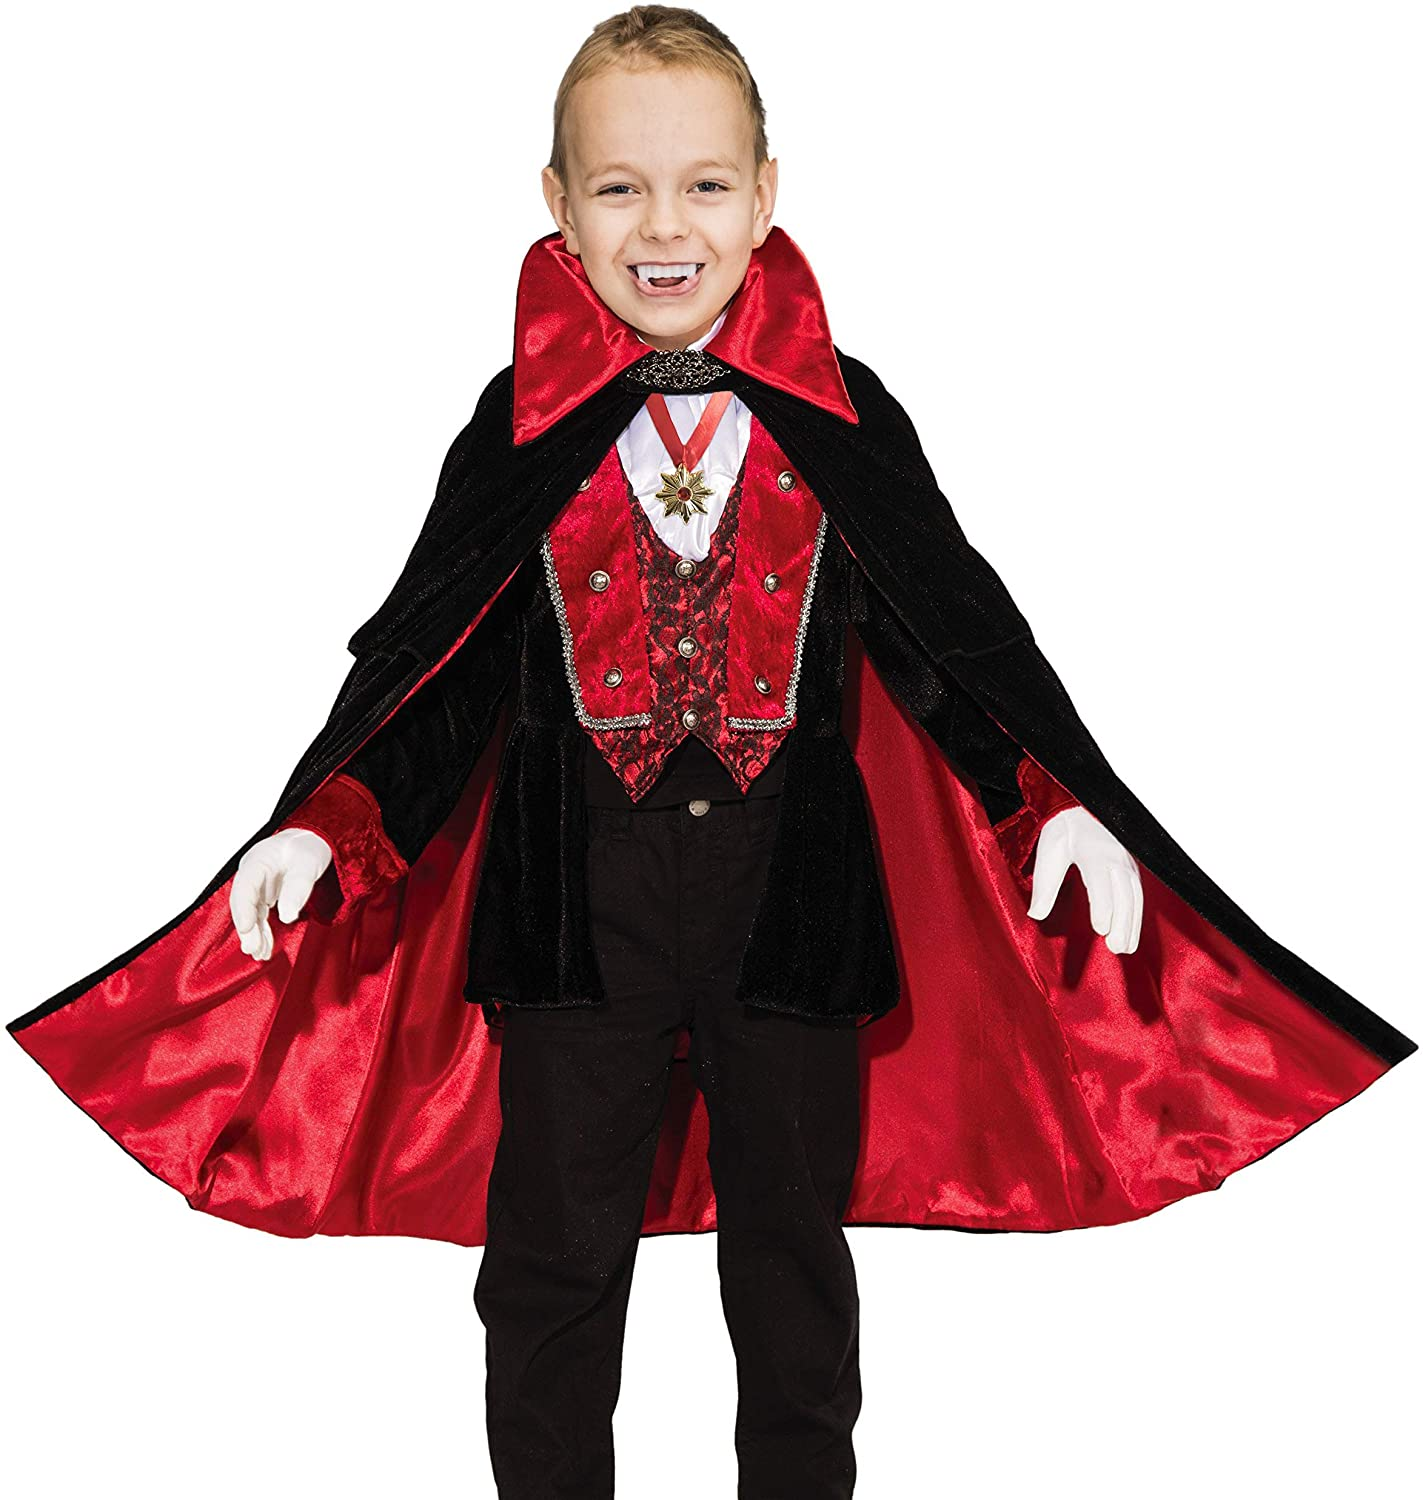 Funnlot Vampire Costume for Boys, Boys Vampire Costume Deluxe Vampire Toddler Kids Vampire Costumes for Boys with Medallion Necklace Halloween Party Dress Up Role Play and Cosplay